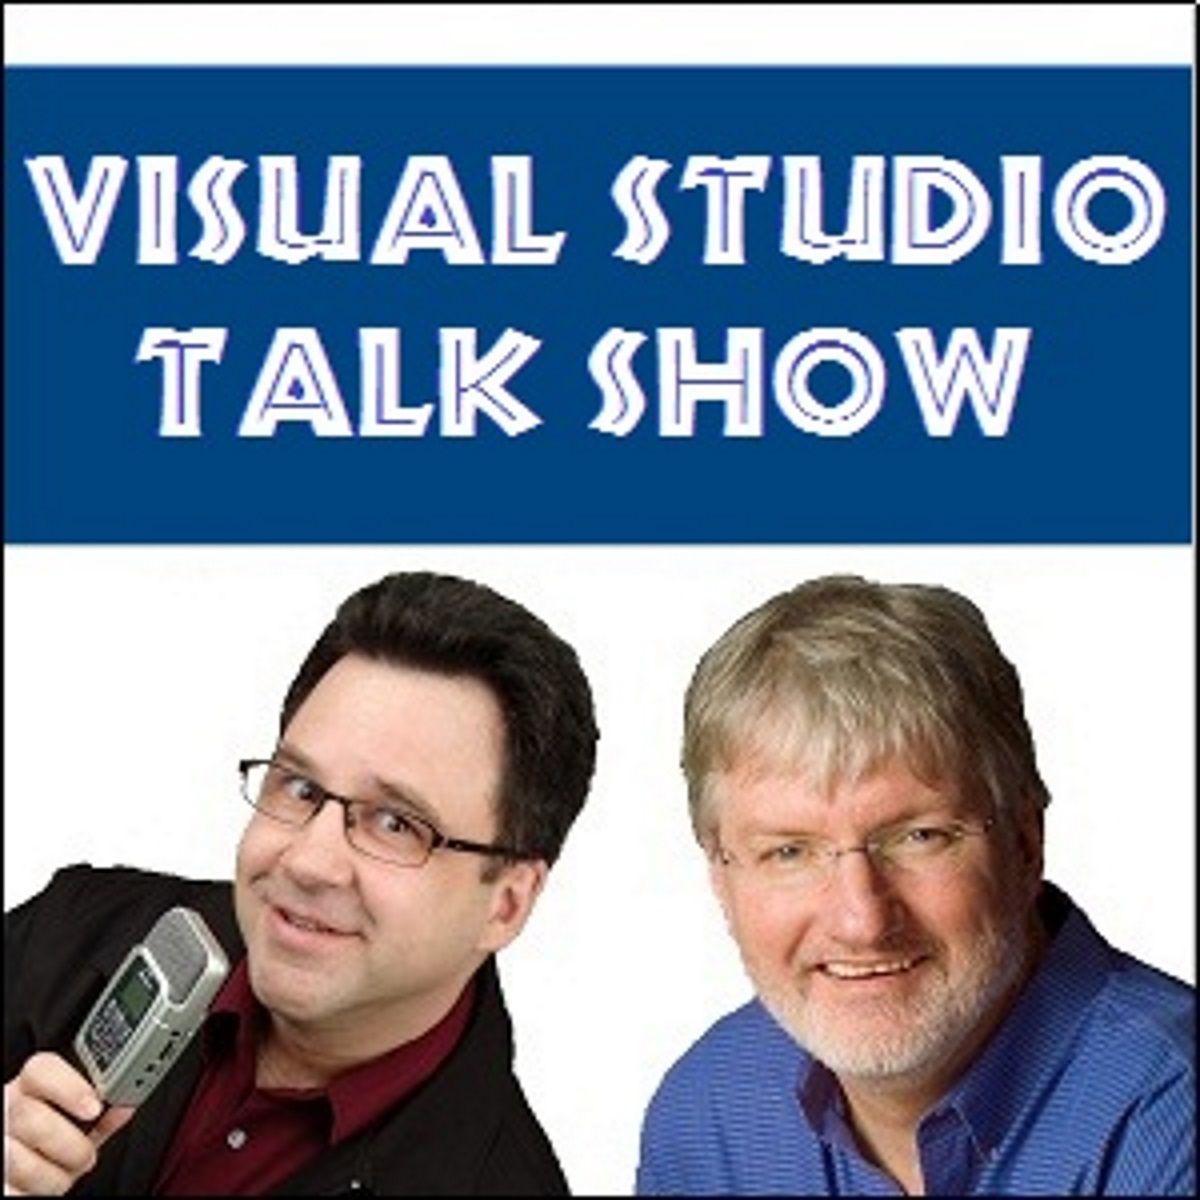 .NET 5 & C# 9 with me in the VisualStudio TalkShow Podcast (FR)